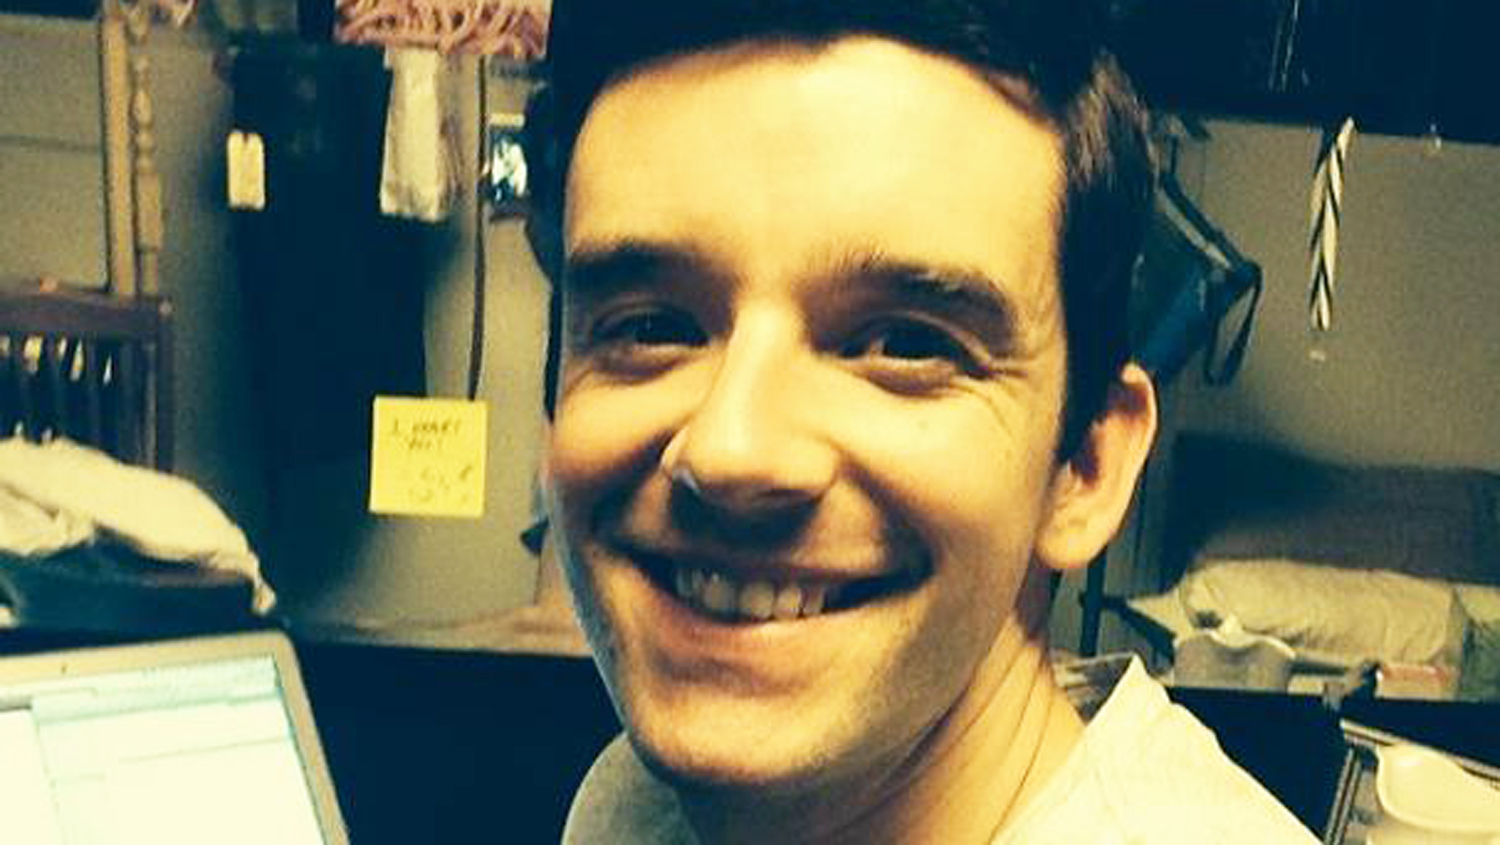 Michael Urie Girlfriend Michael urie today com - 2D274905299660-140306-michael-urie-selfie